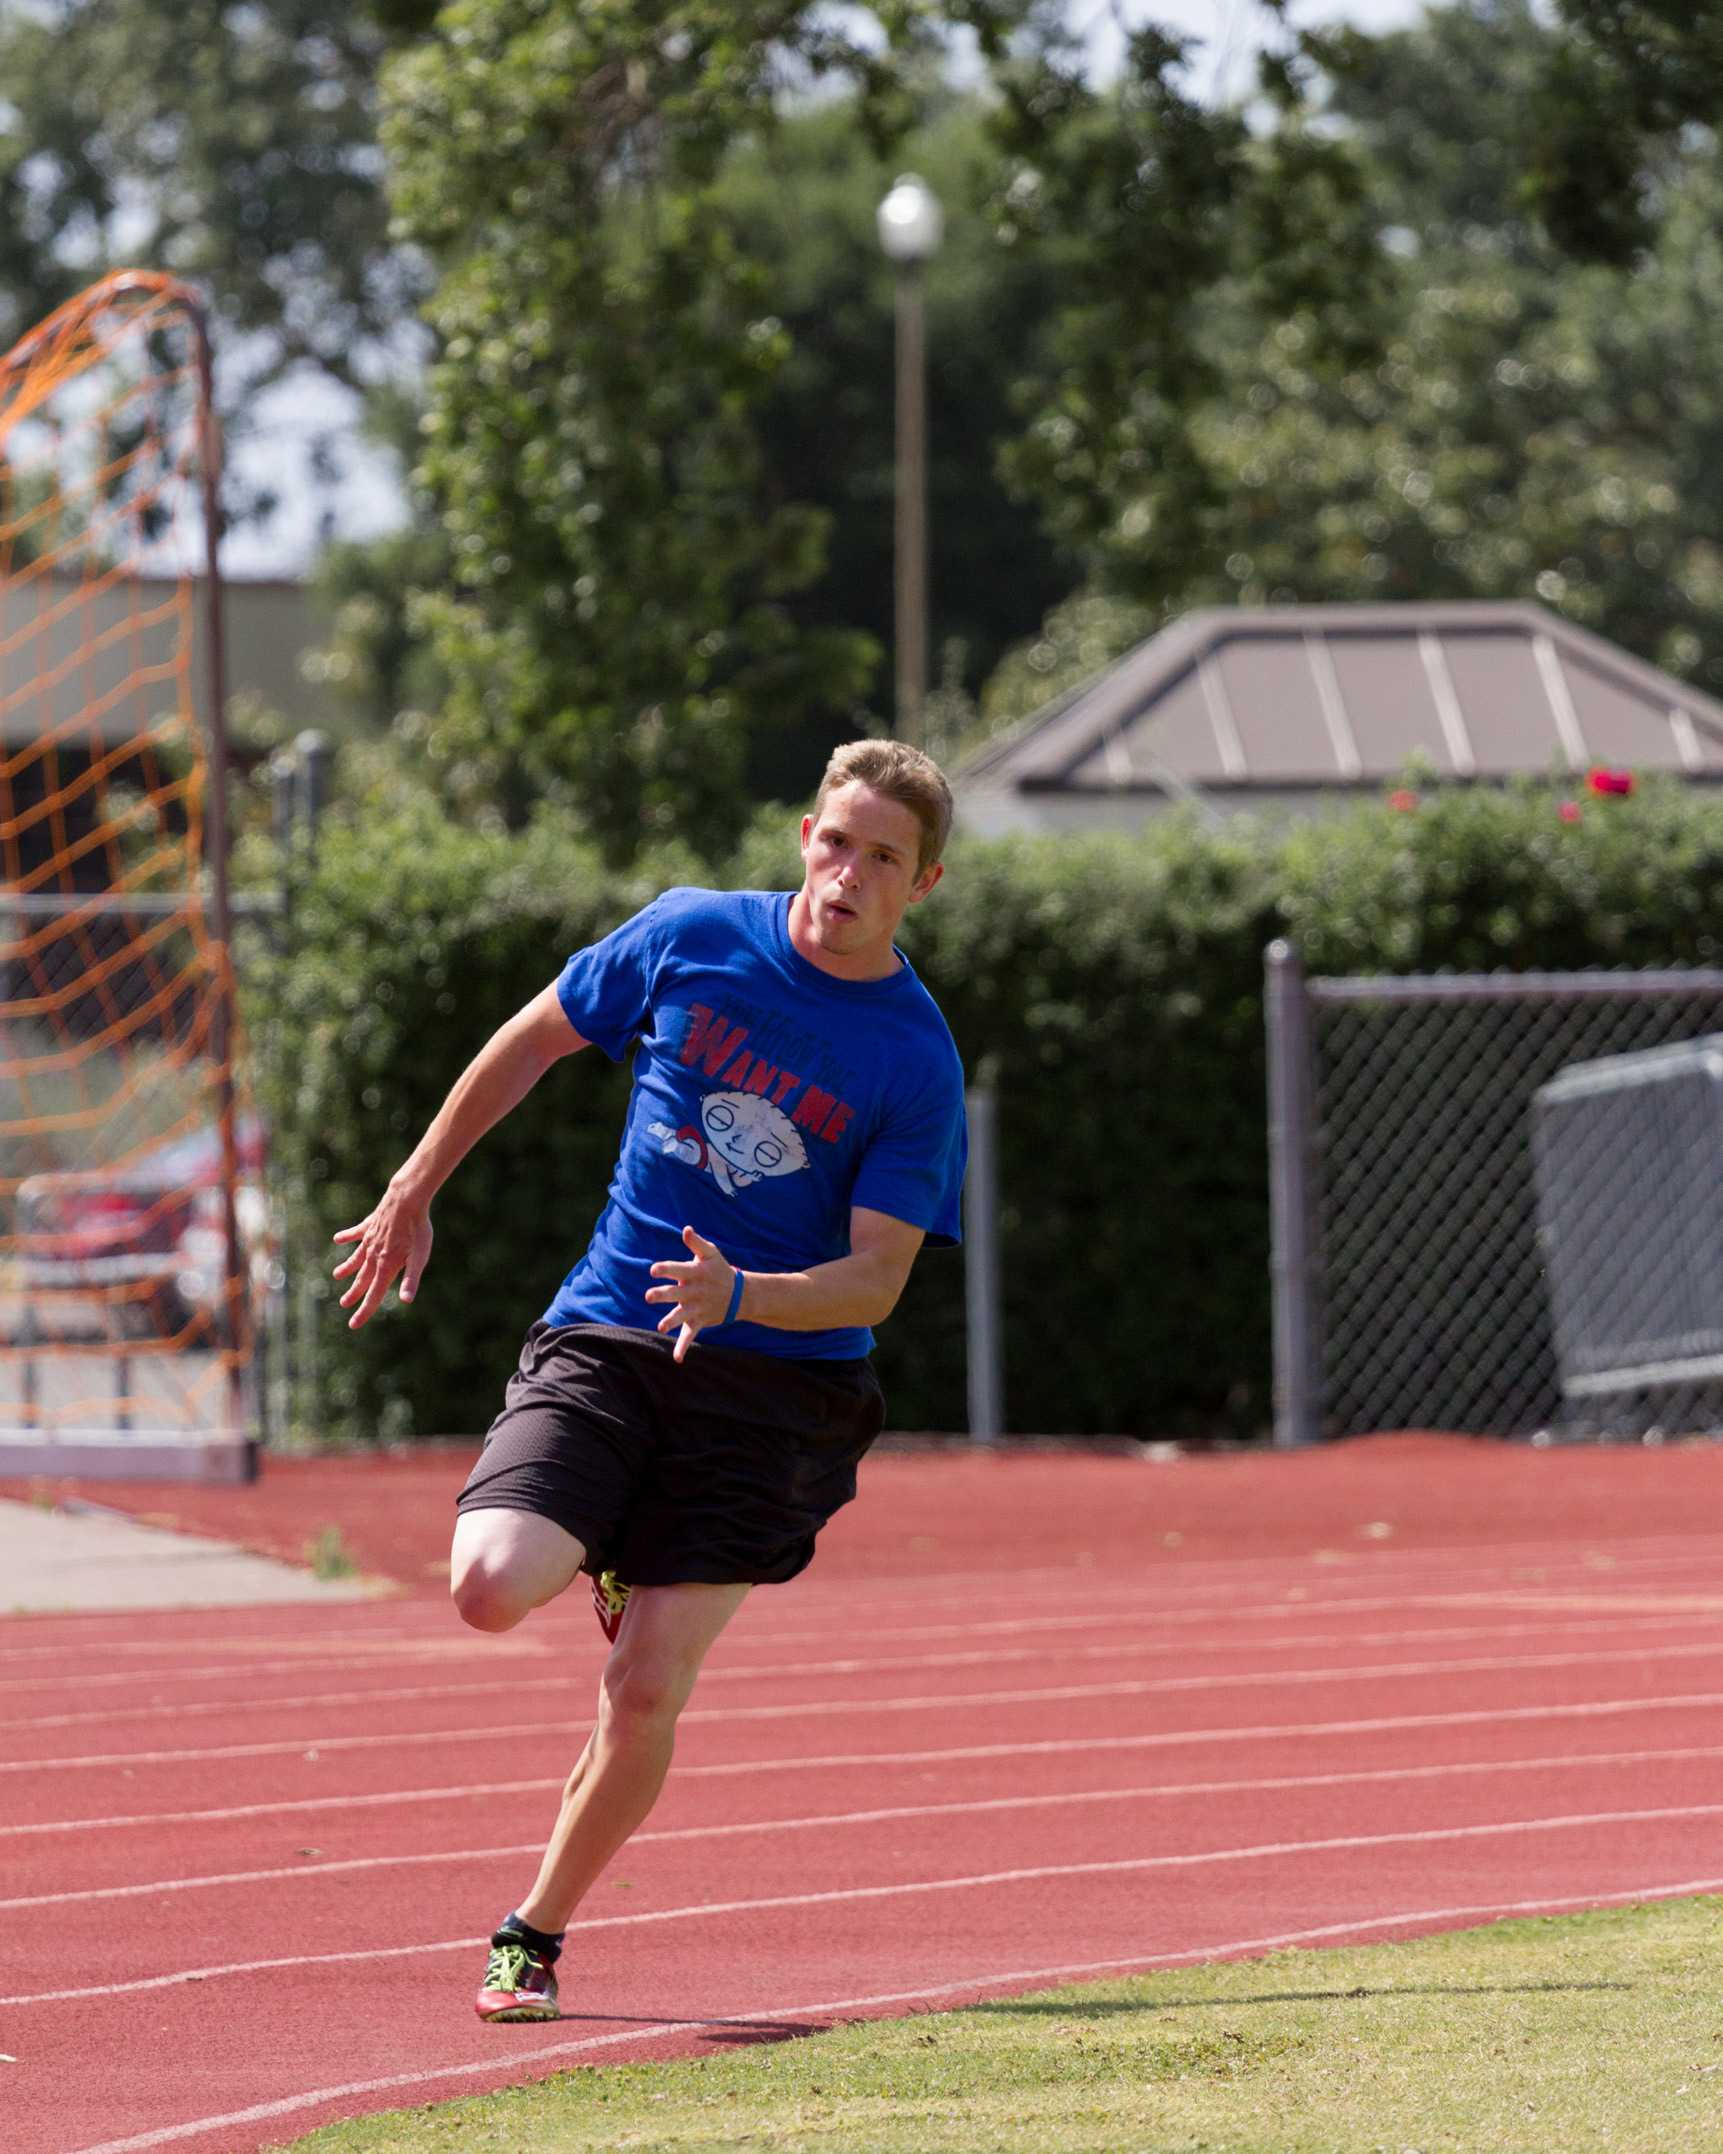 SRJC runner Kyle Vannetti practices for the Conference Finals April 23. He will be competing in the 200 meter and 4x100.